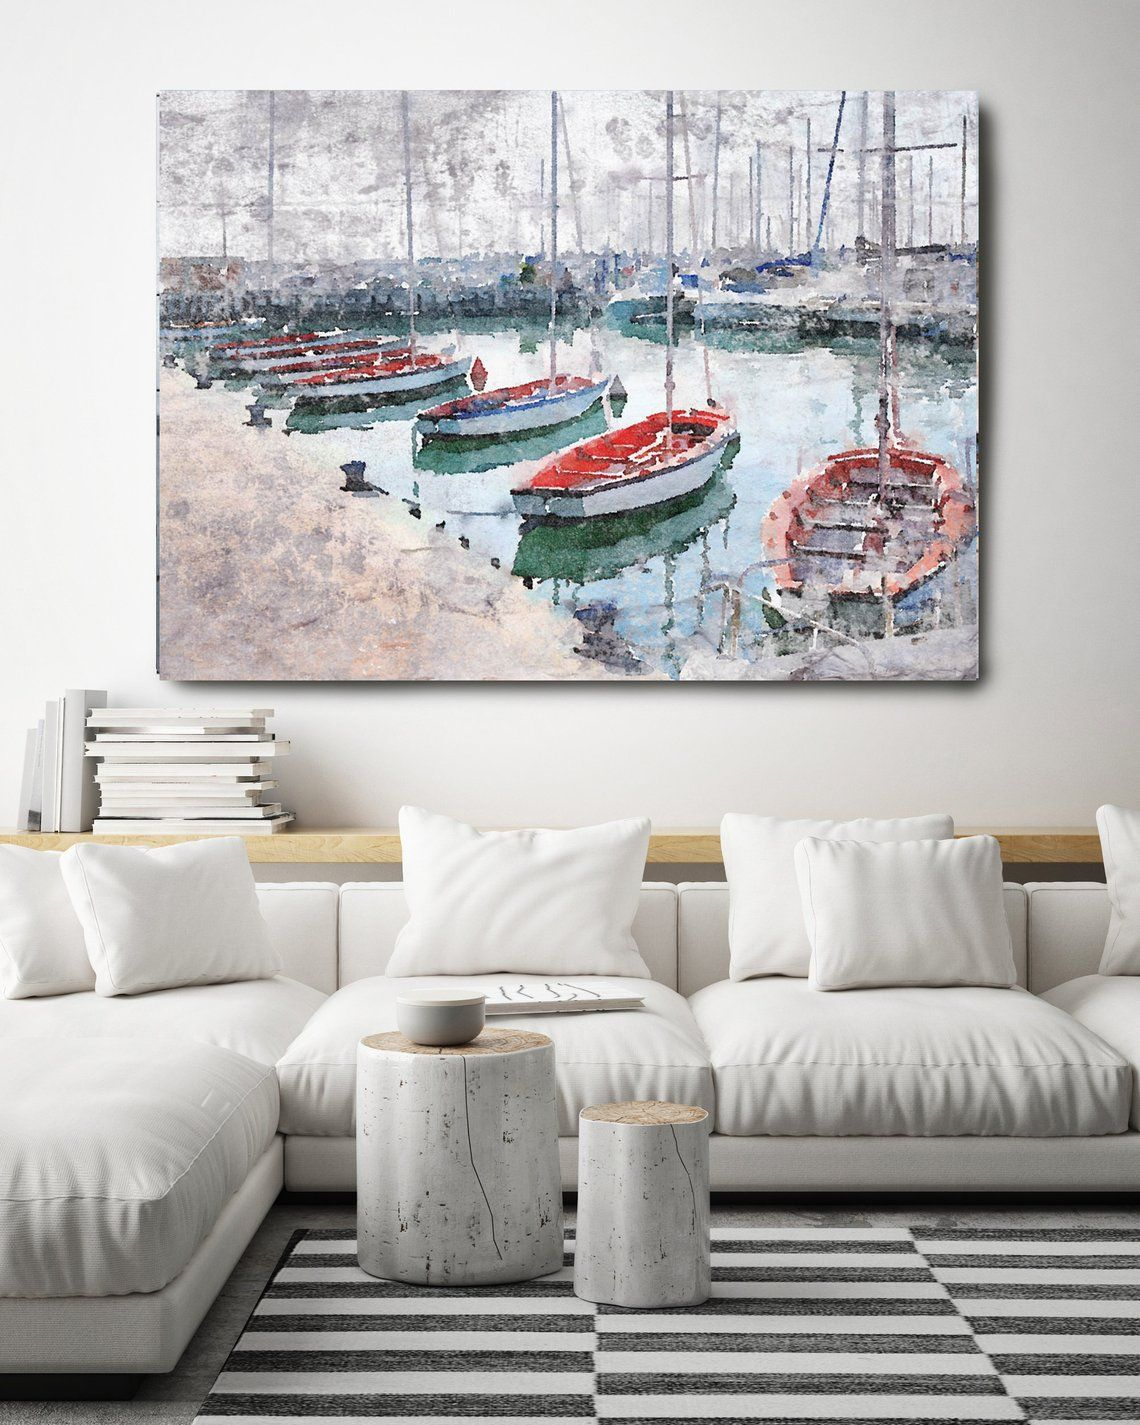 Newport Marina, Beach Decor, Rustic Seascape, Coastal Wall Canvas Art, Grey Red & White, Sea ...